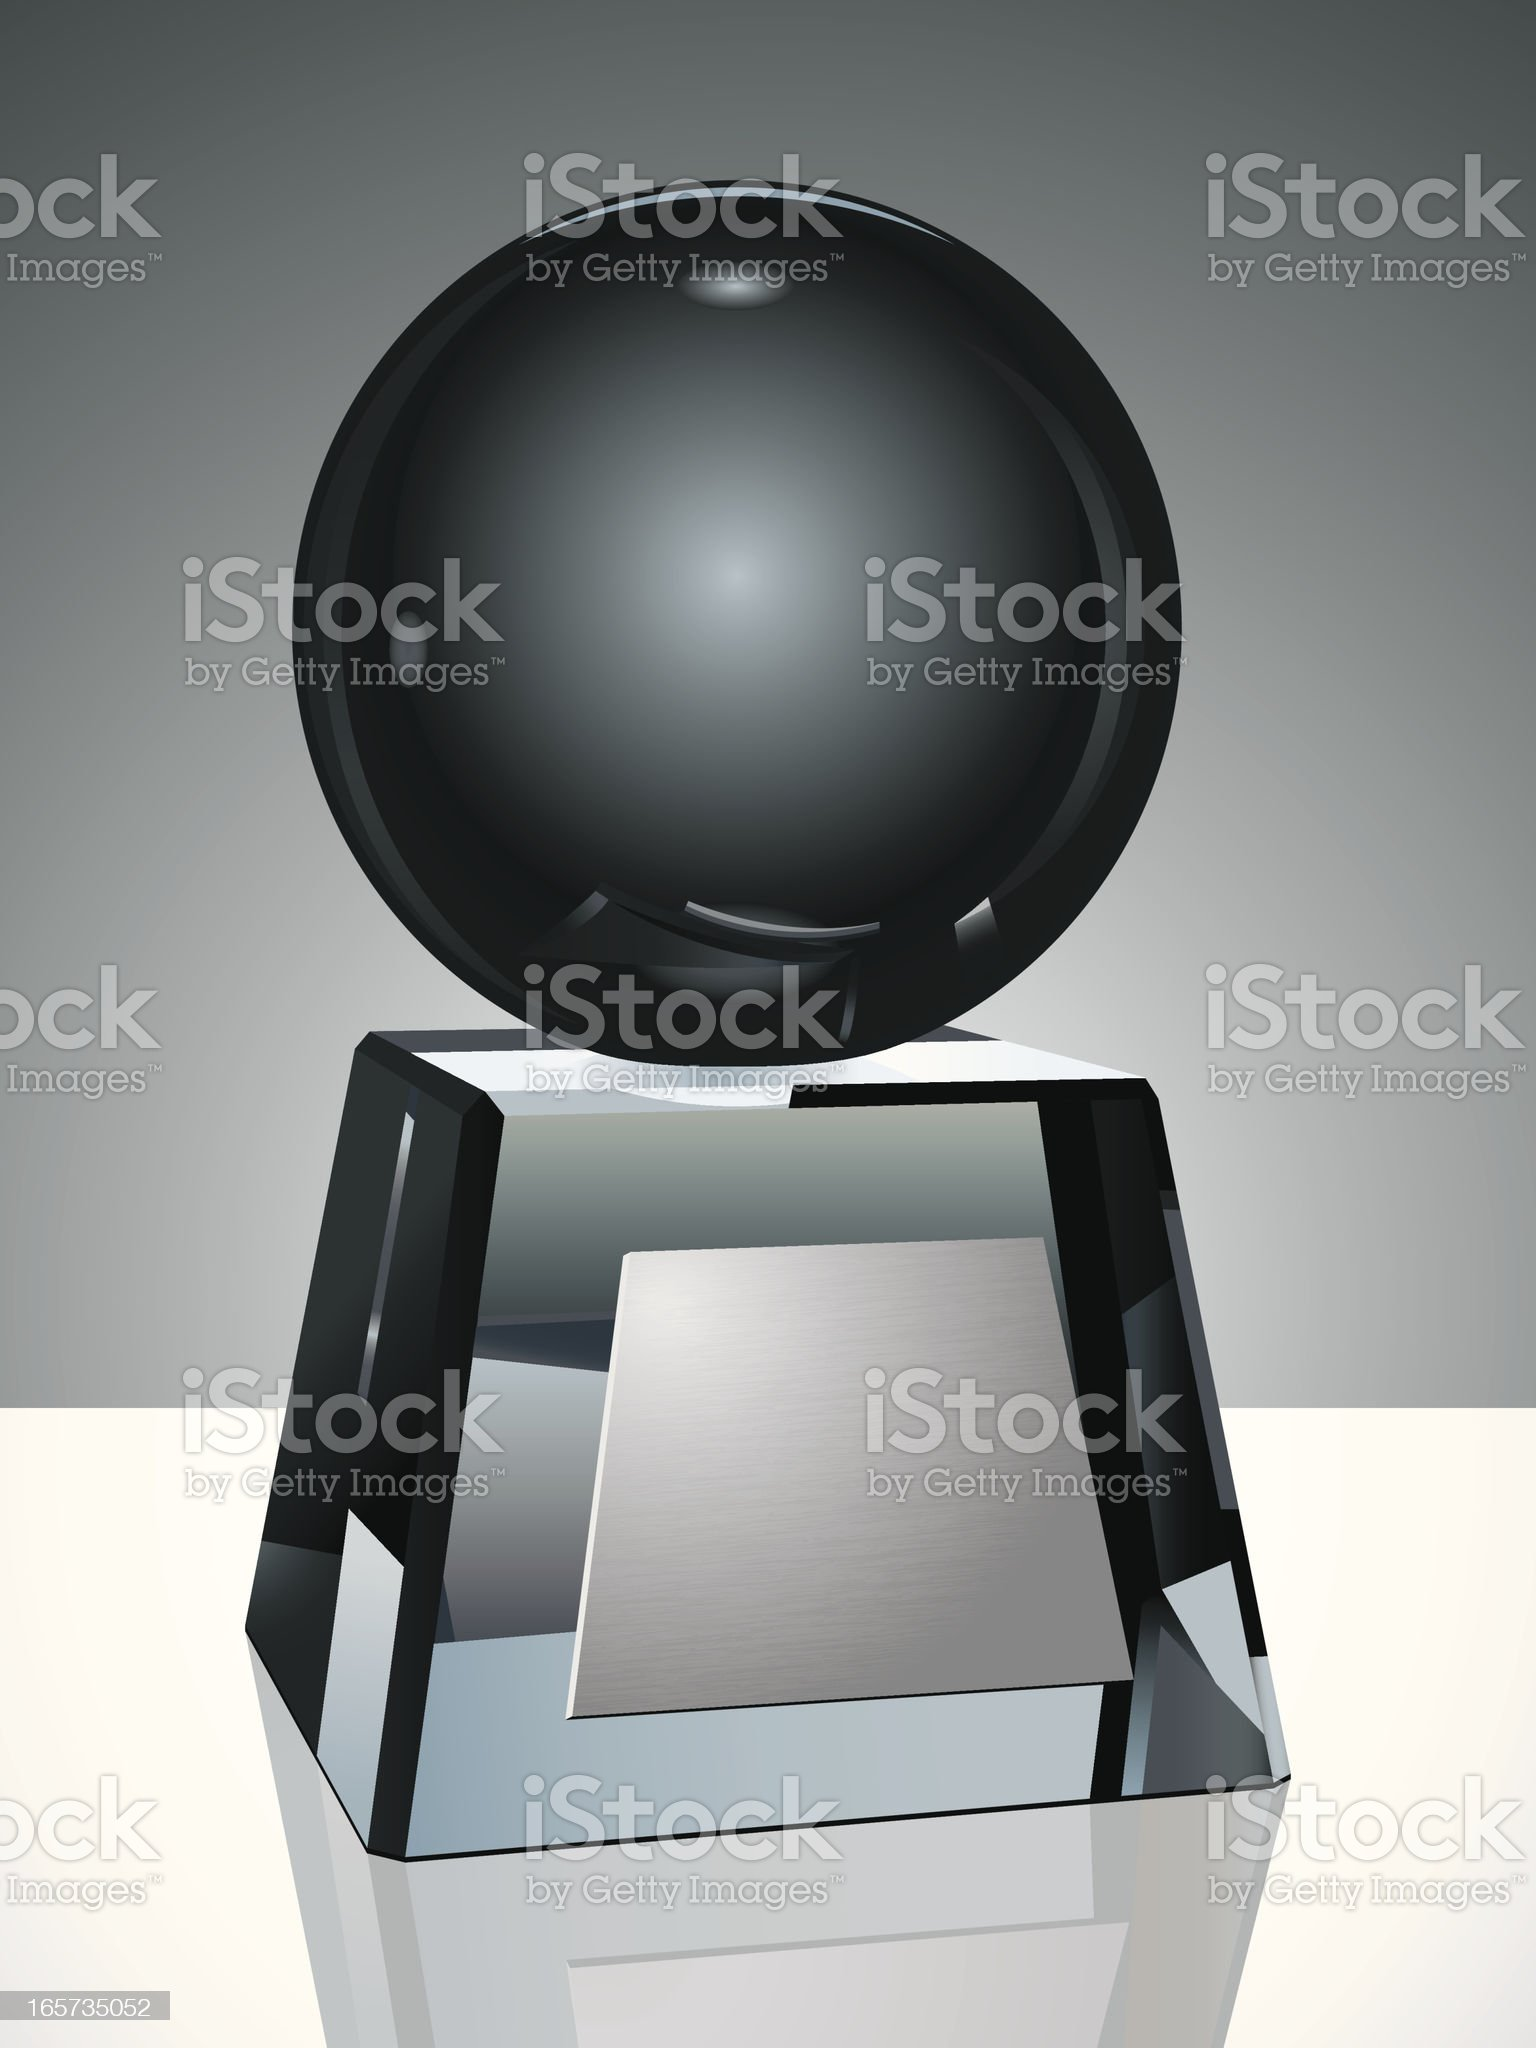 Crystal Trophy with Globe royalty-free stock vector art